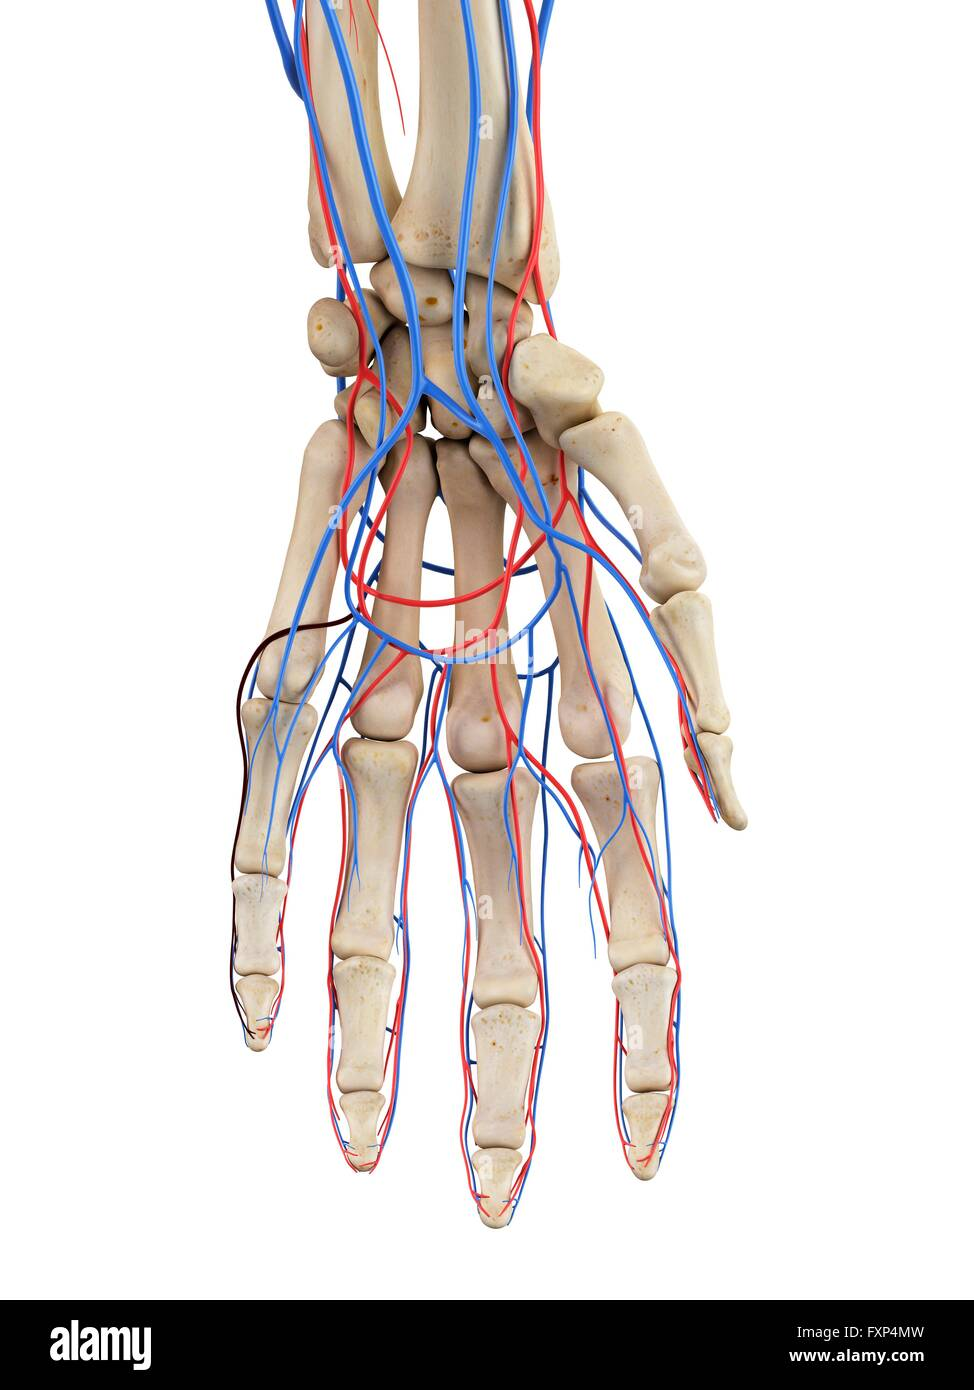 Veins Of The Hand Stockfotos & Veins Of The Hand Bilder - Alamy